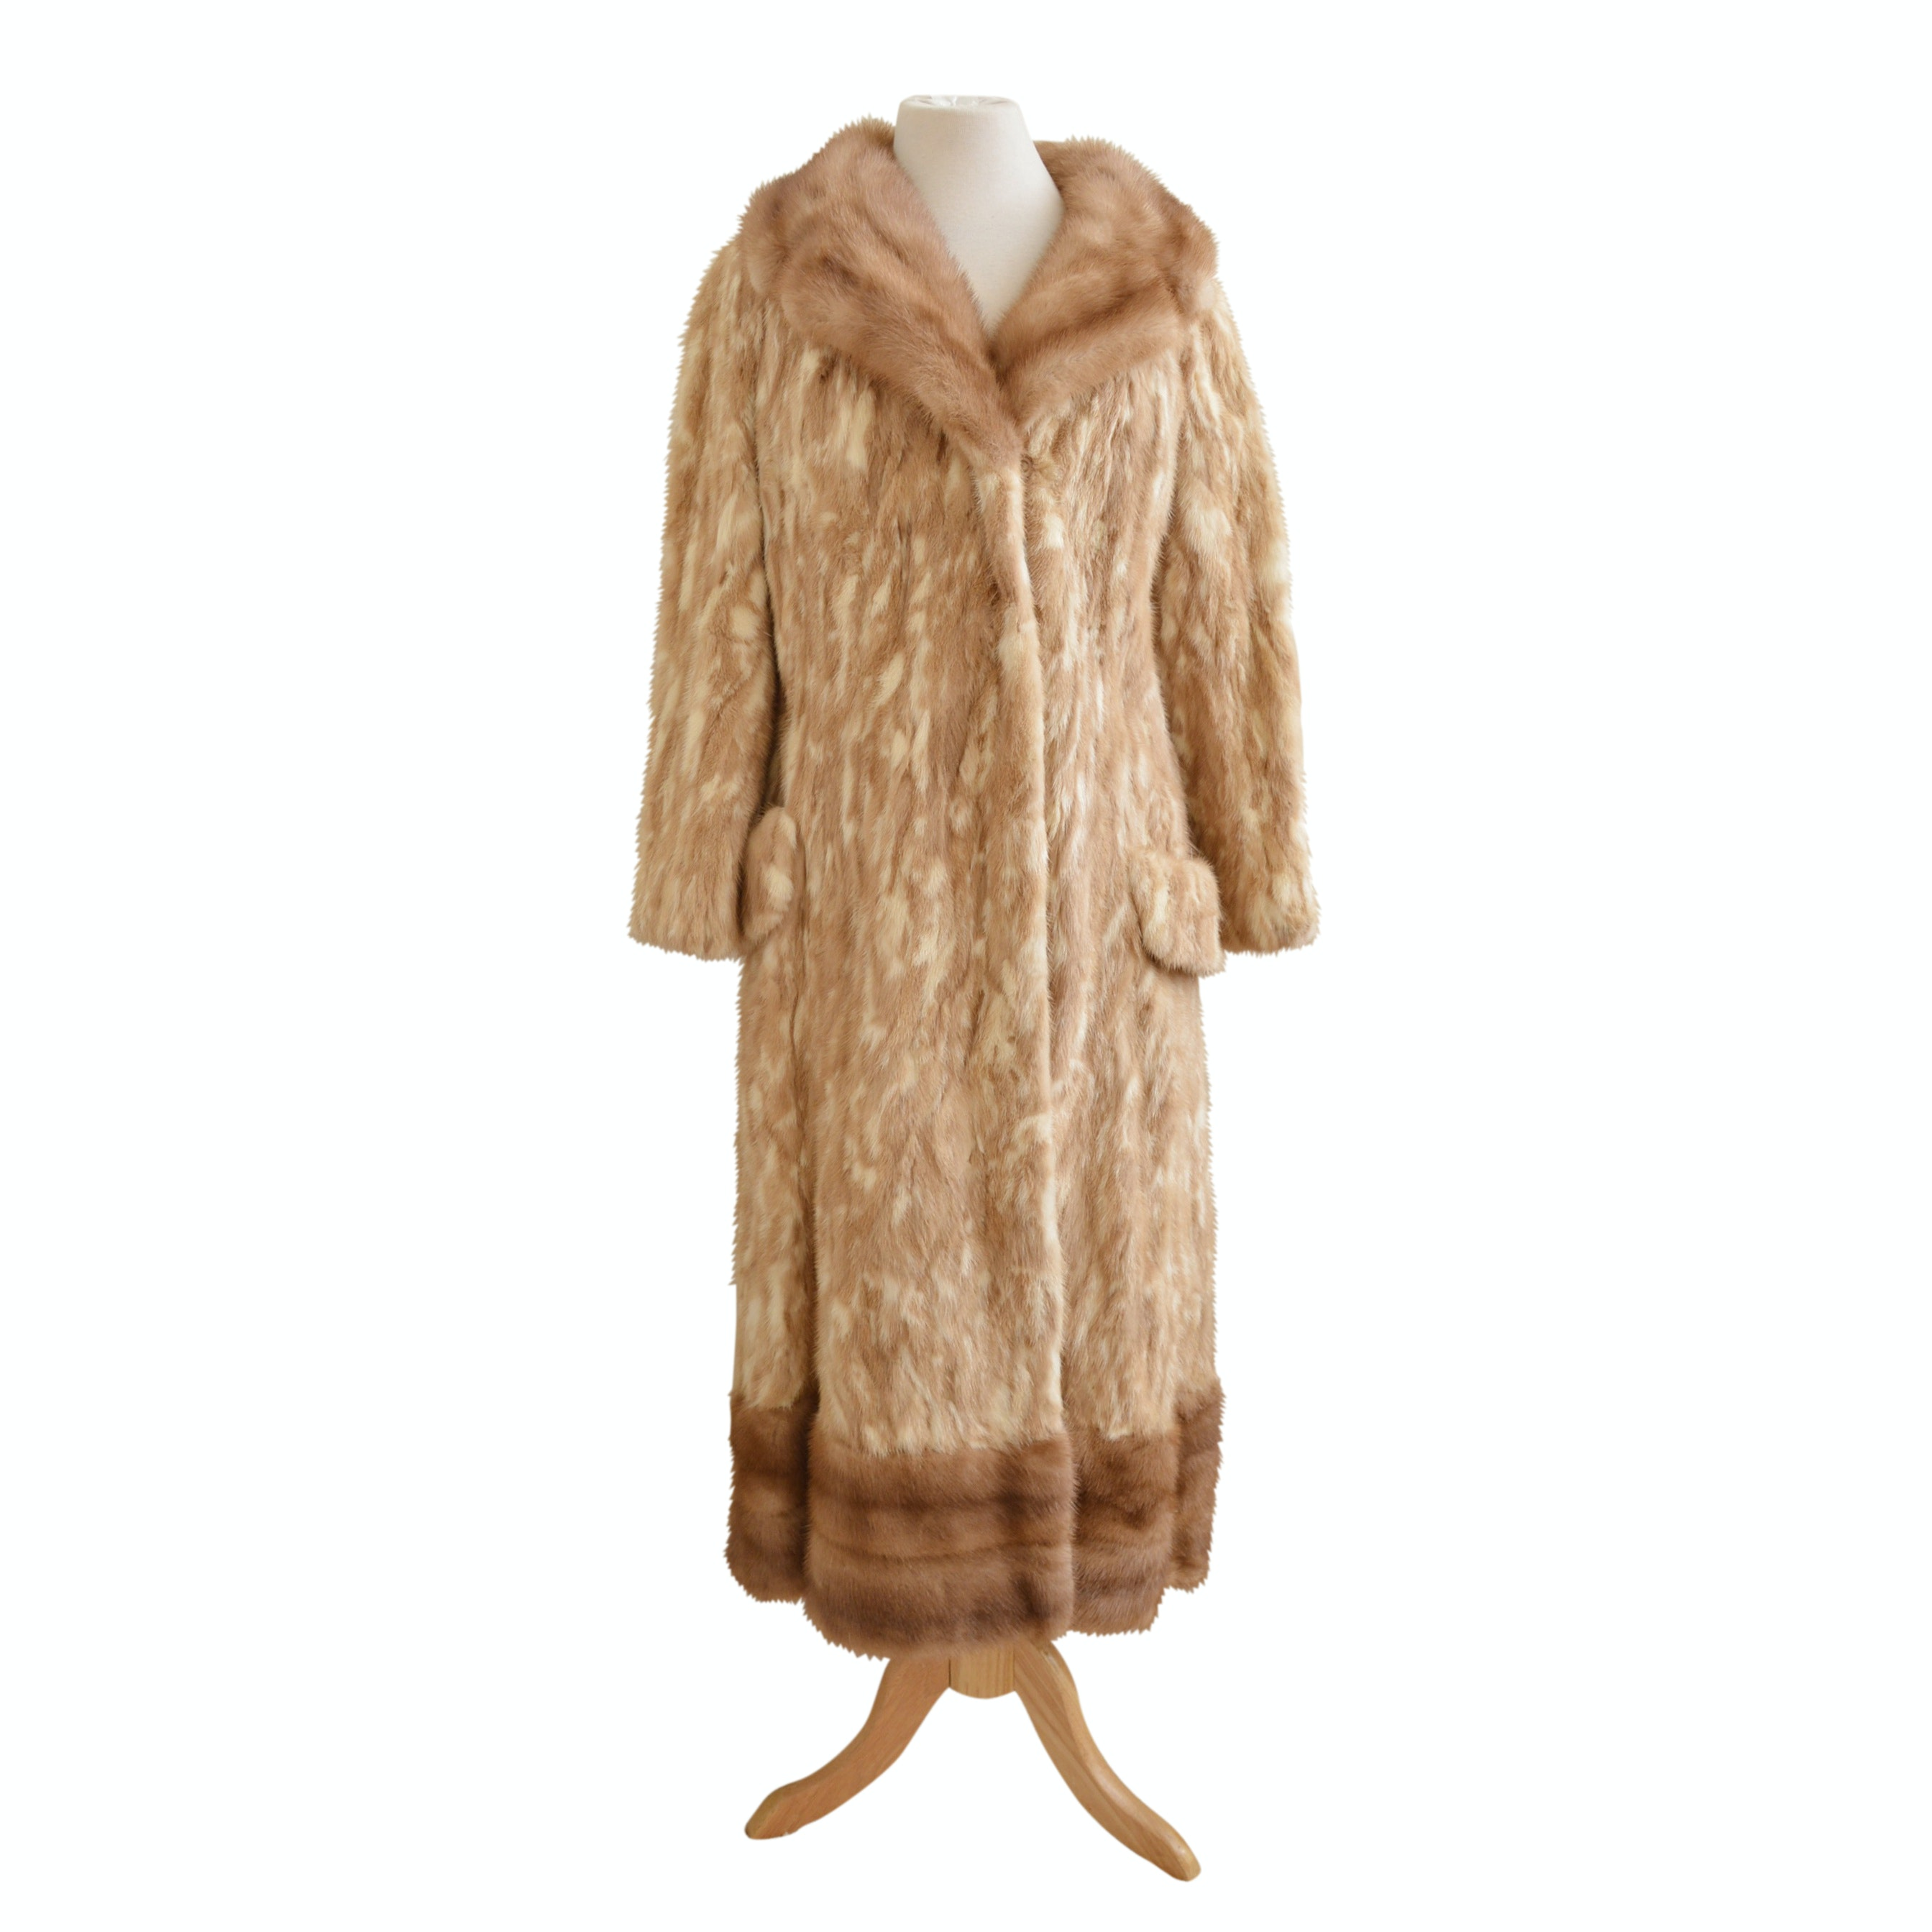 Vintage Dyed-Patterned Mink Fur Coat with Pastel Ranch Mink Fur Trim